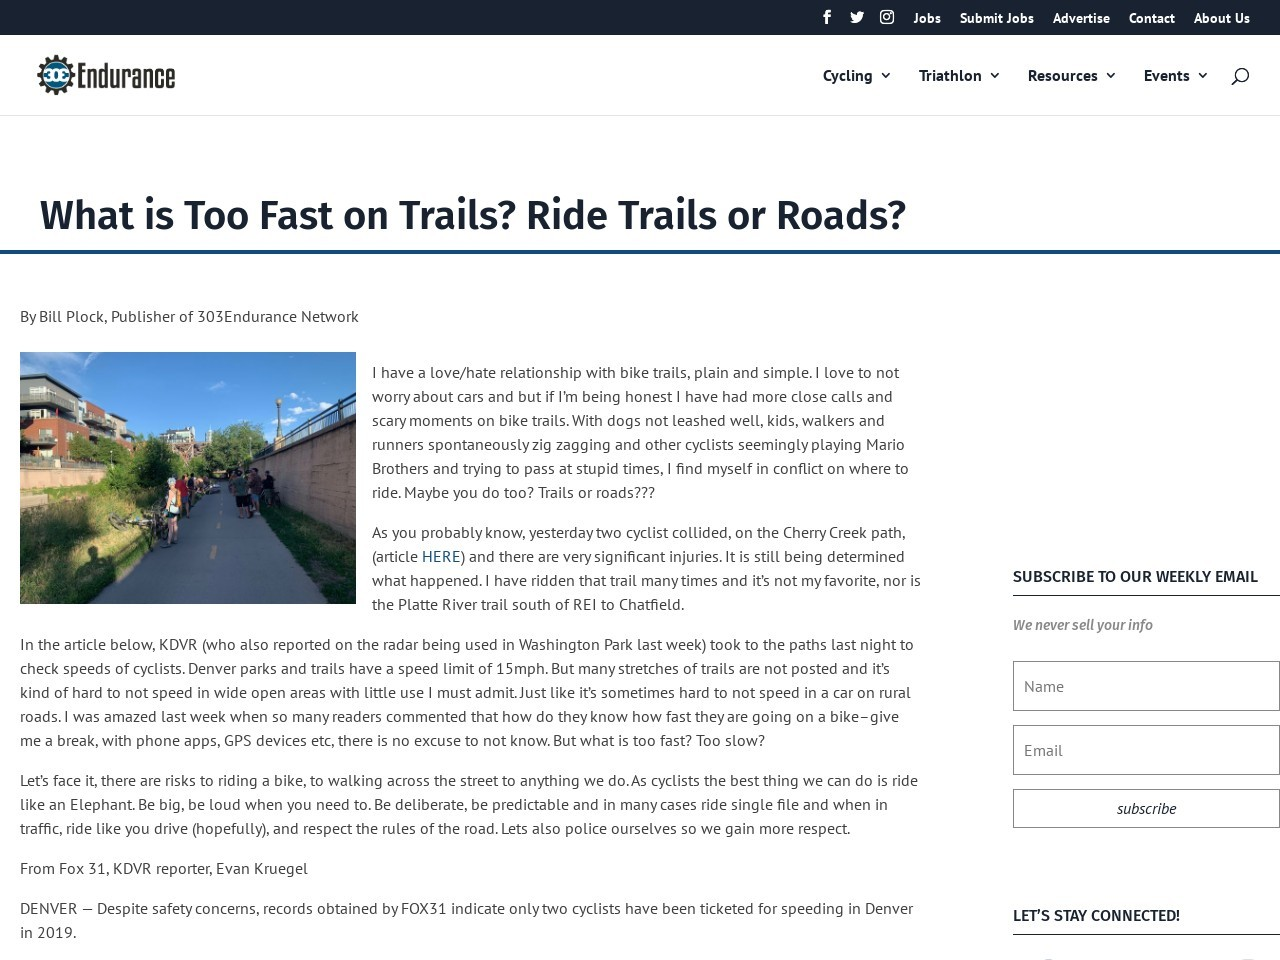 What is Too Fast on Trails? Ride Trails or Roads?